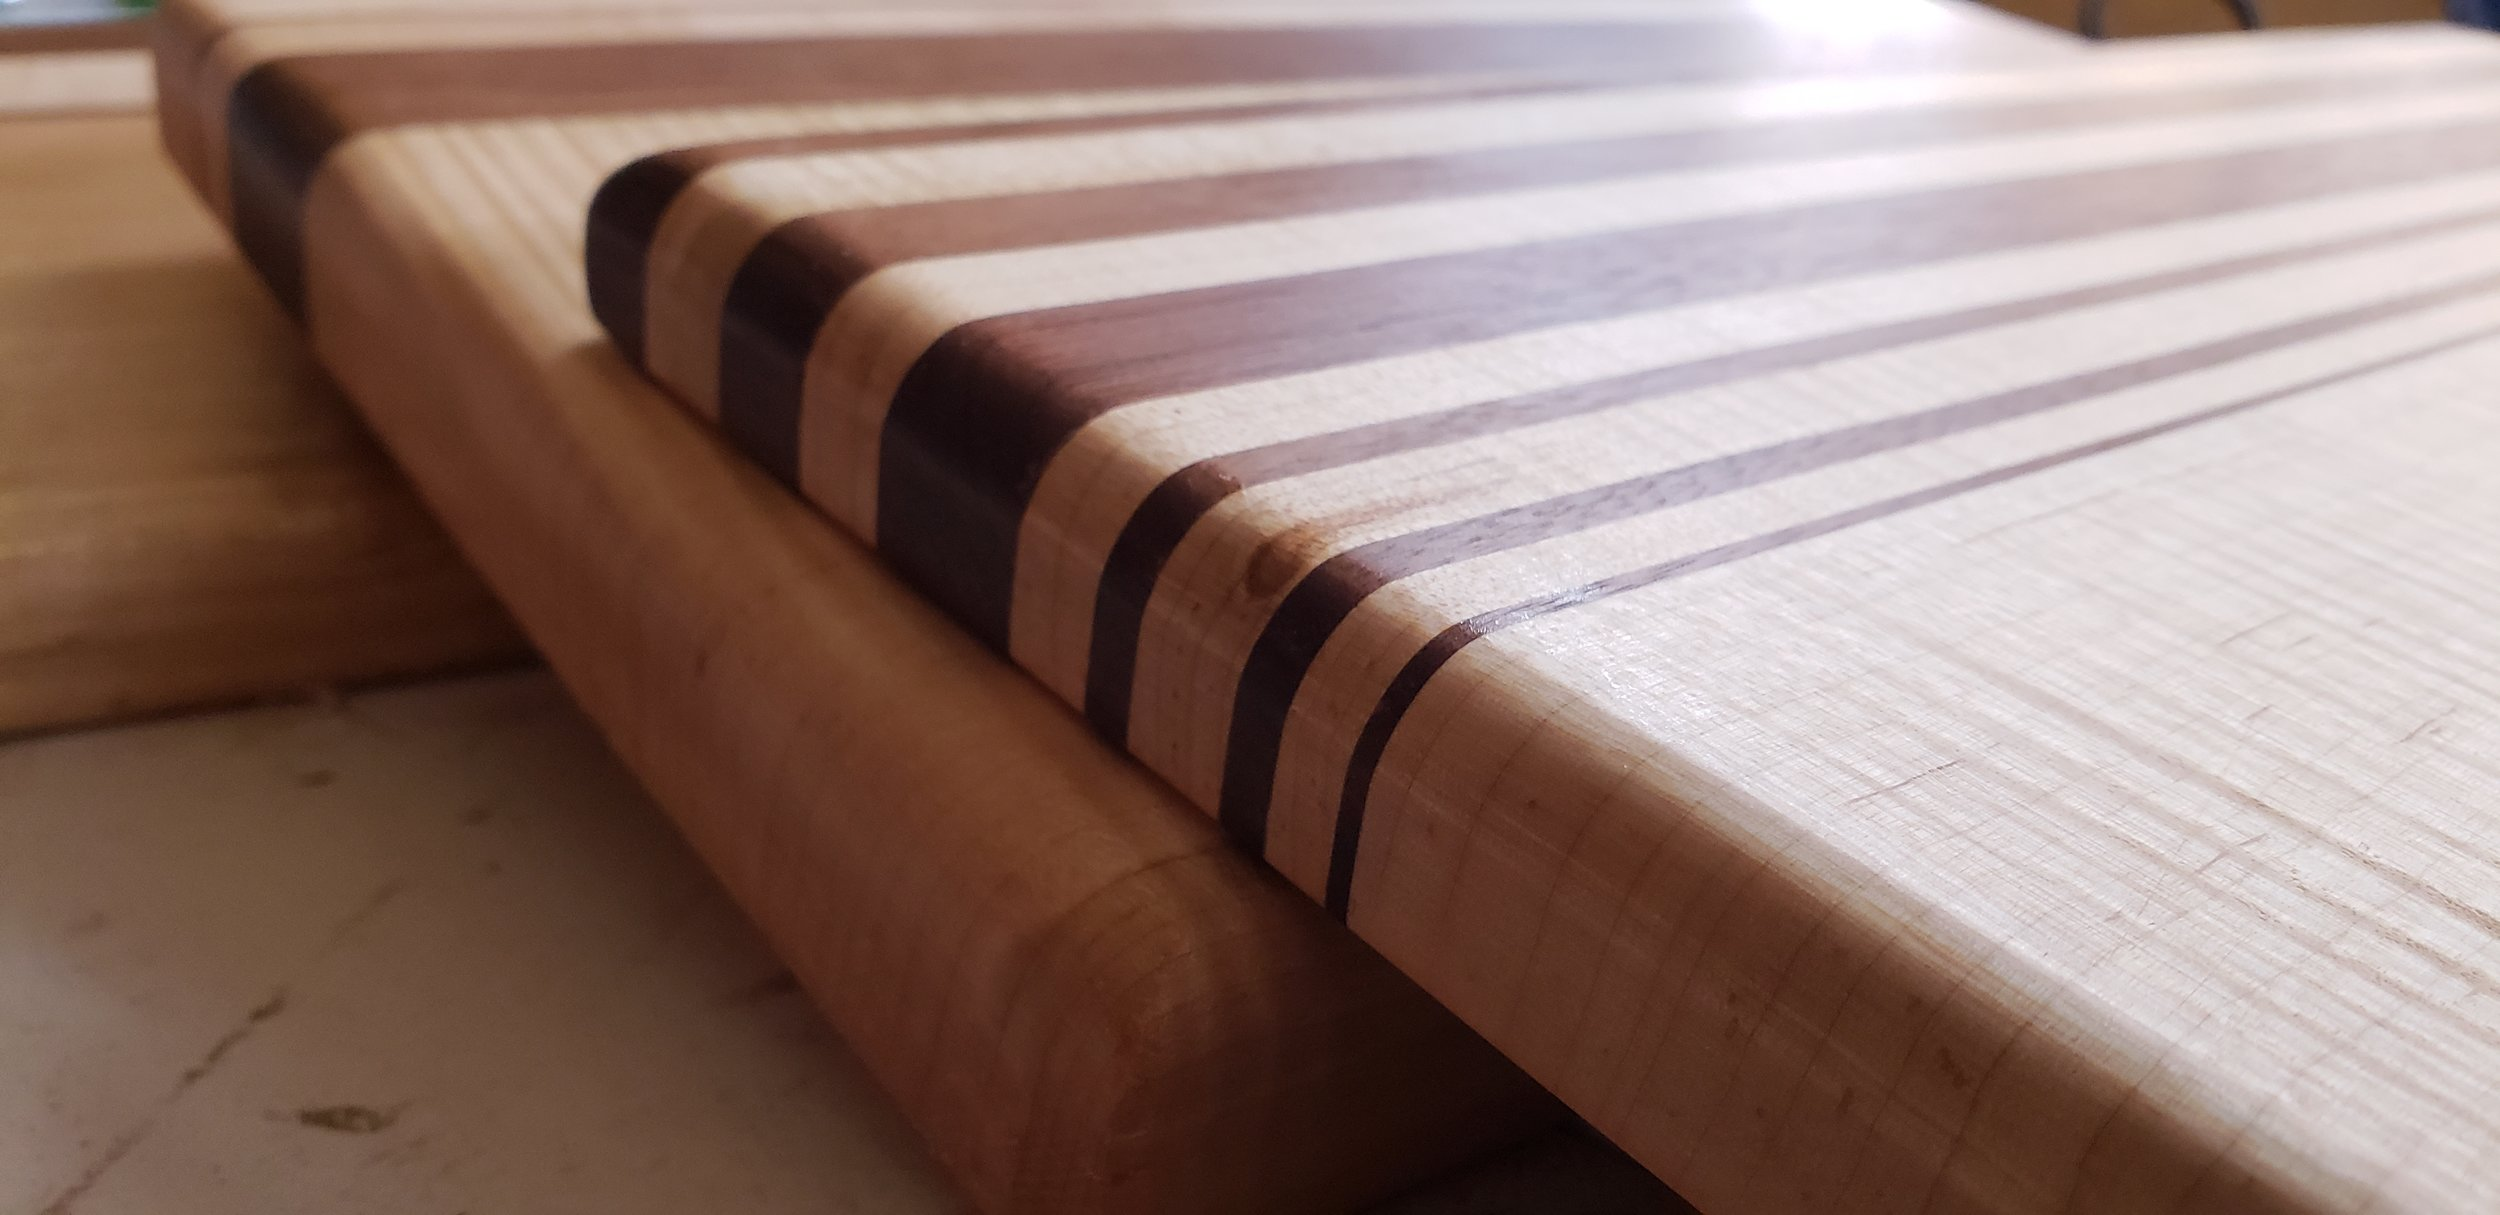 Learn How To Make a Cutting Board - Woodworking Classes